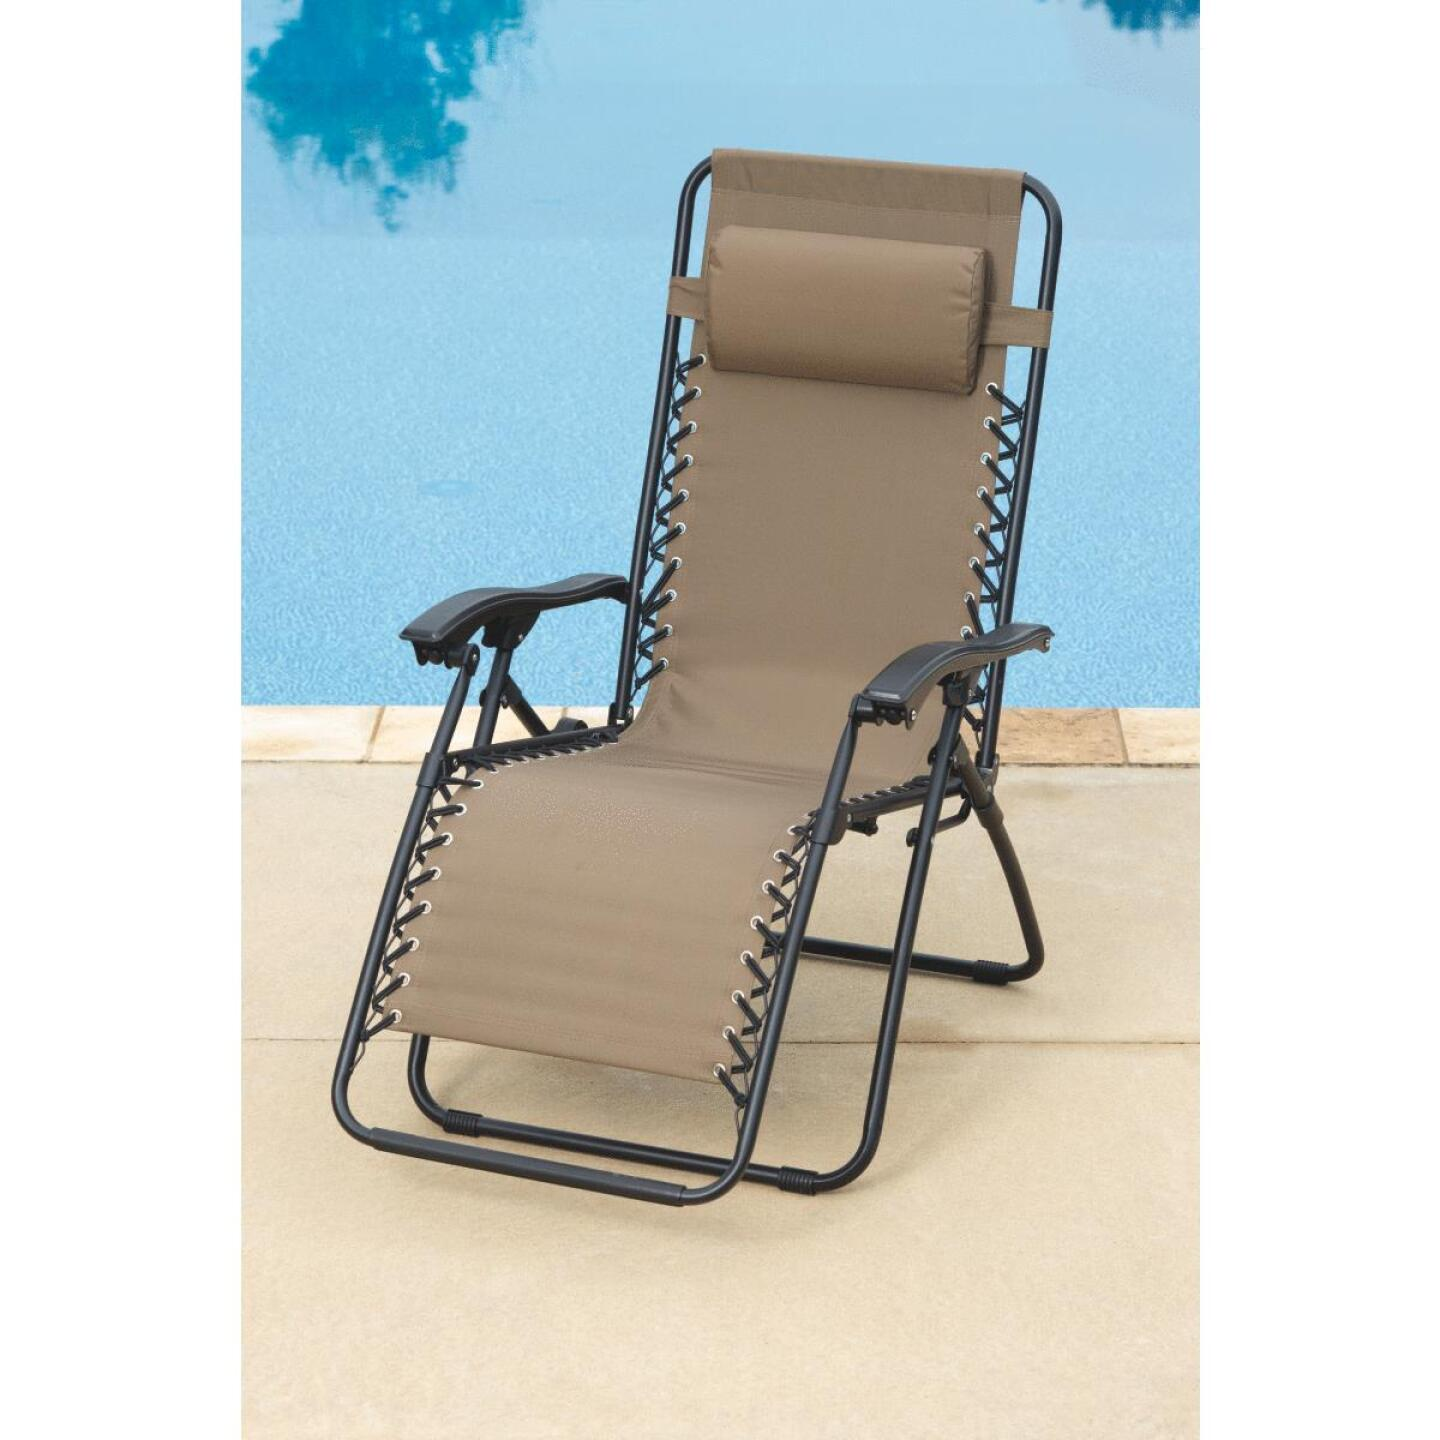 Outdoor Expressions Zero Gravity Relaxer Tan Convertible Lounge Chair Image 2